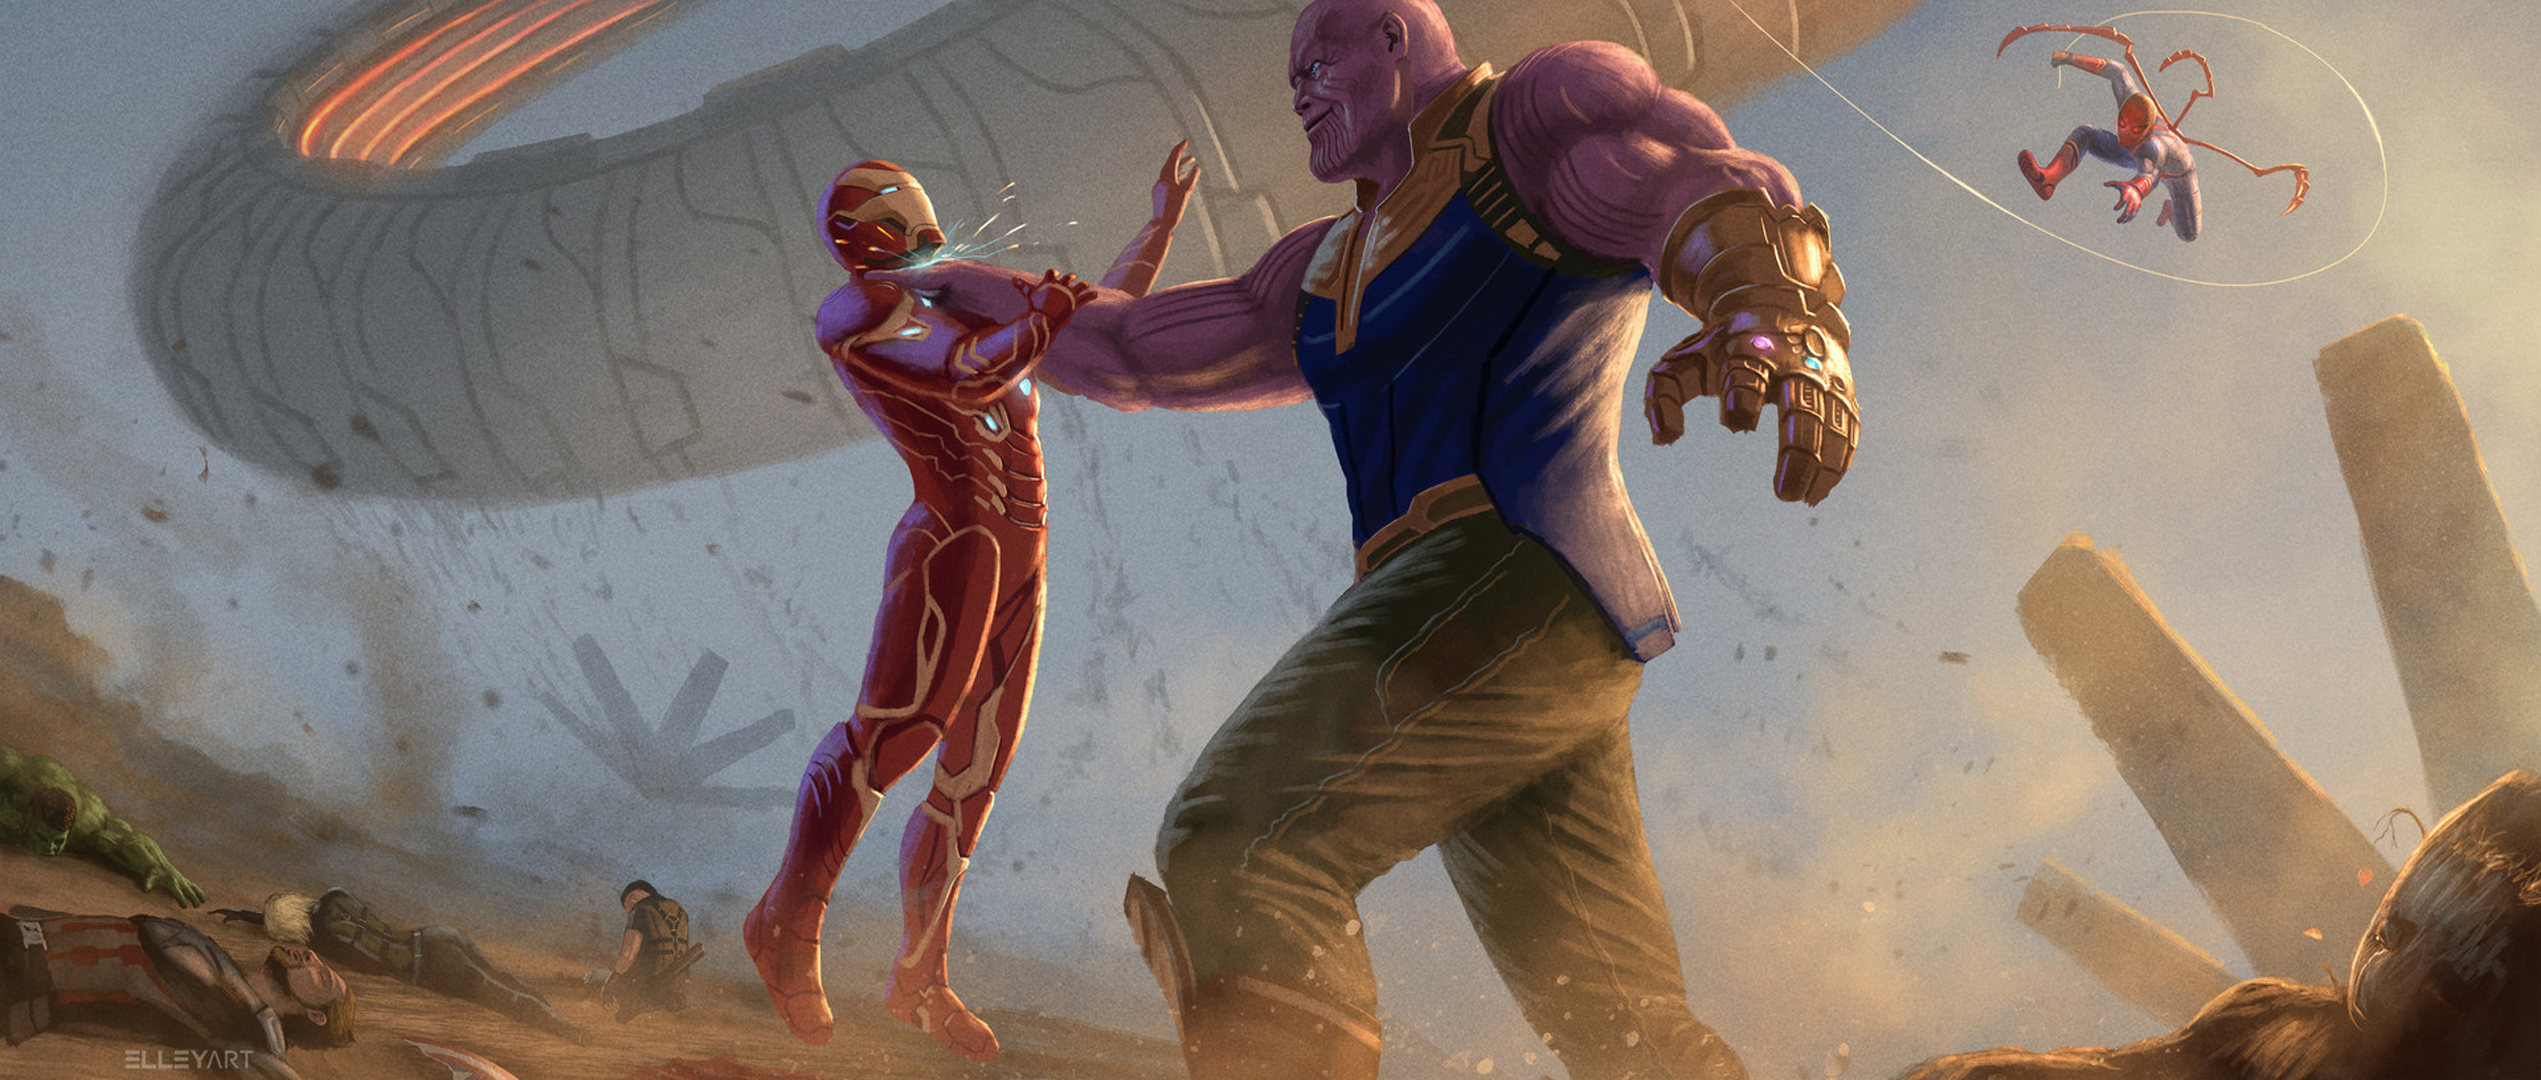 Thanos vs Iron Man